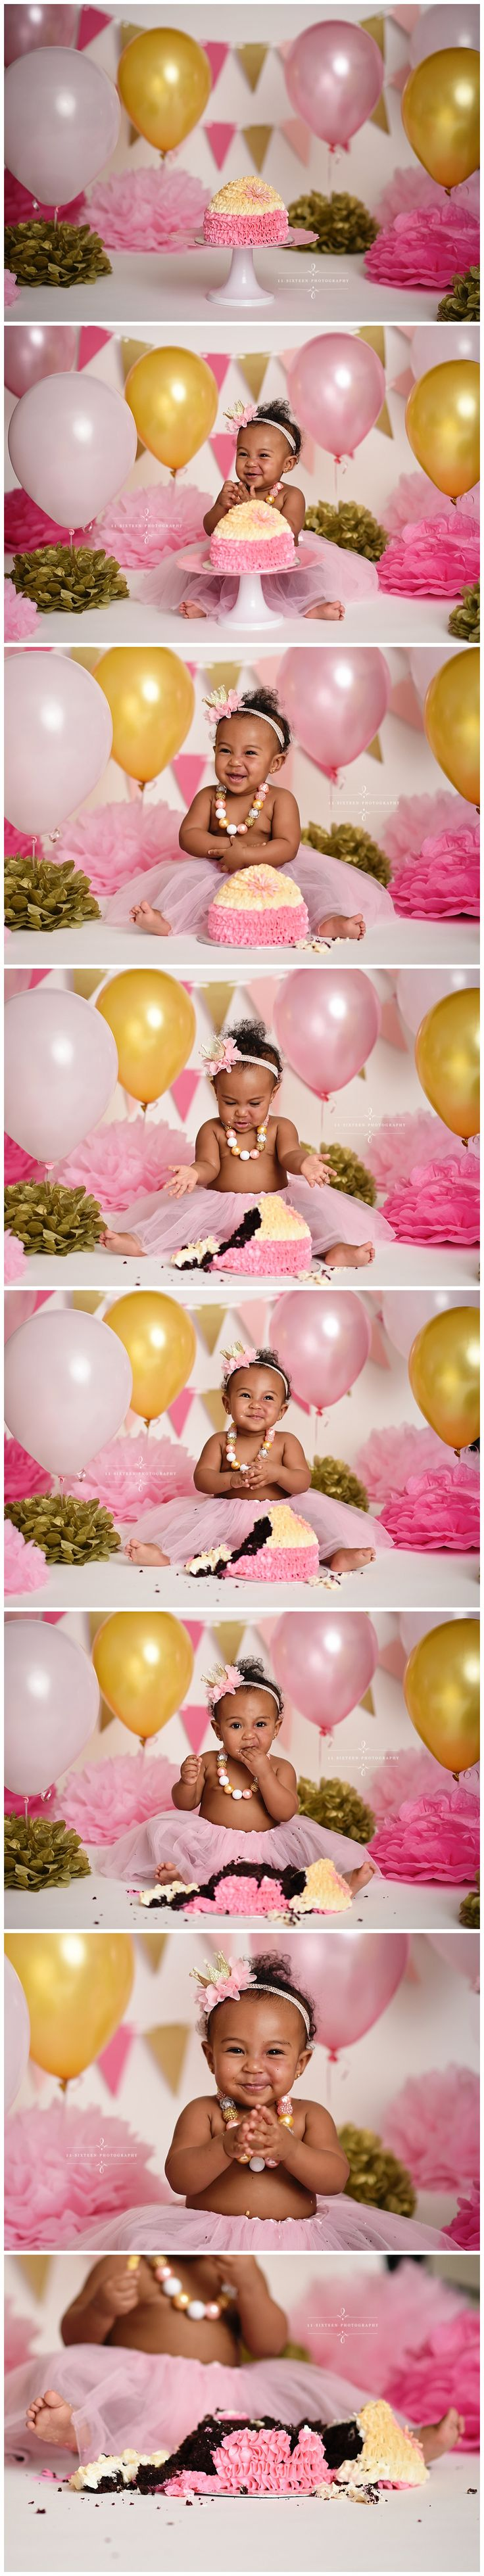 cake smash session, first birthday, one, girl, baby, pink and gold, cake, balloons, studio photography, ideas, inspiration, professional, richmond, glen allen, midlothian, virginia, VA, 11 Sixteen Photography